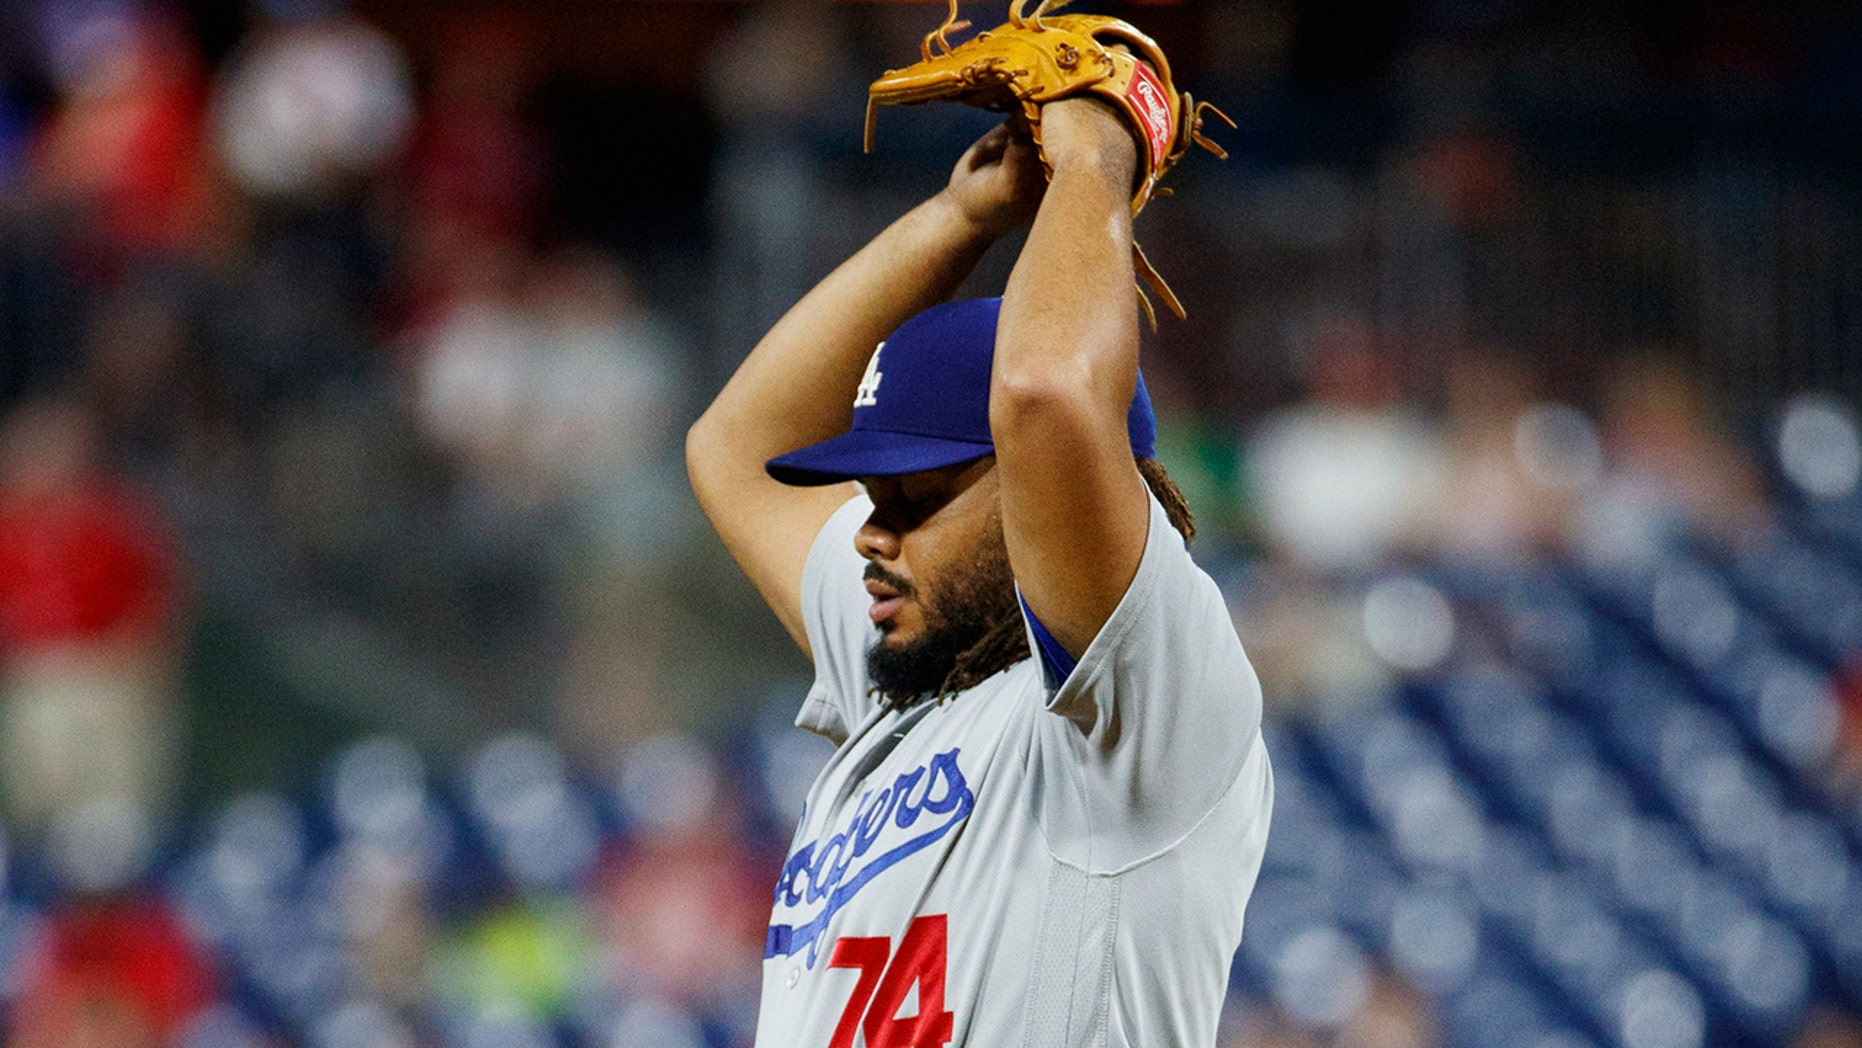 Los Angeles Dodgers relief pitcher Kenley Jansen stretches during the ninth inning of the team's baseball game against the Philadelphia Phillies, Tuesday, July 16, 2019, in Philadelphia. Philadelphia won 9-8. (AP Photo/Matt Slocum)